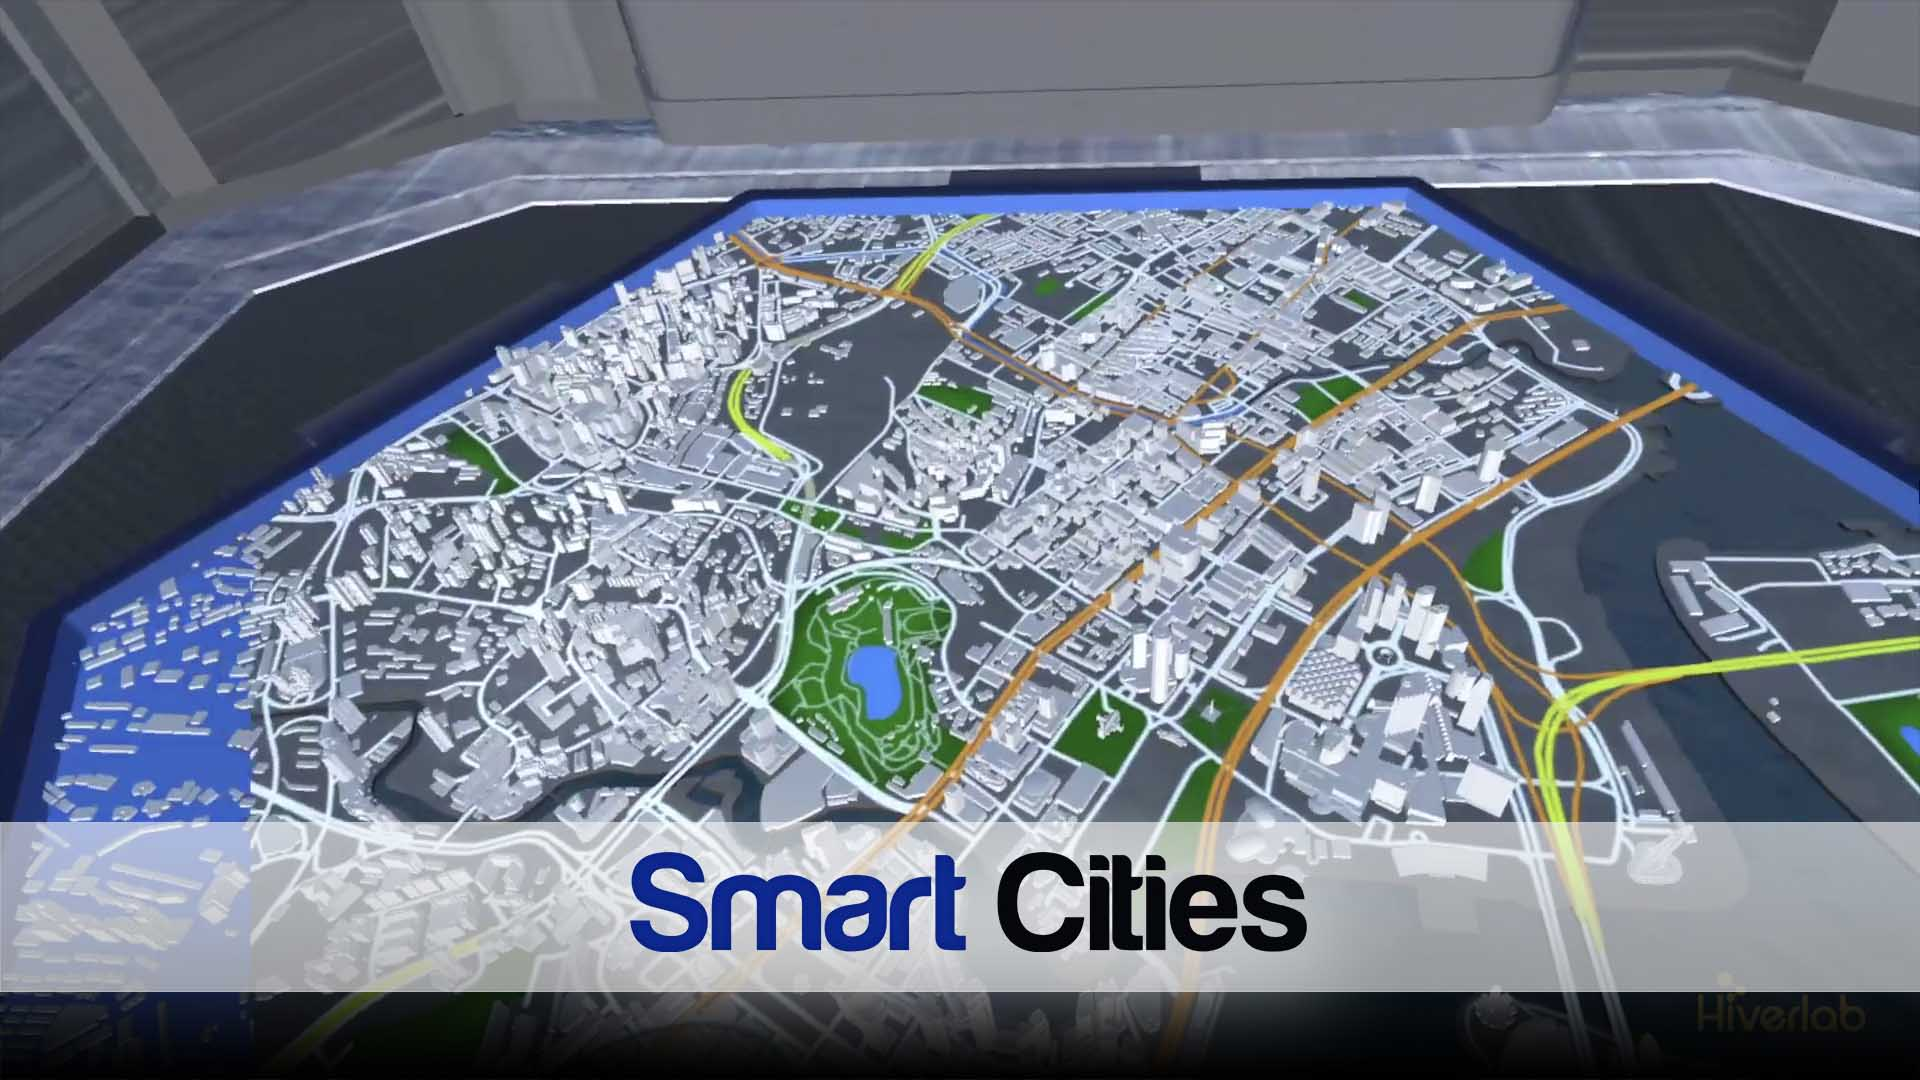 Smart City real time data visualization